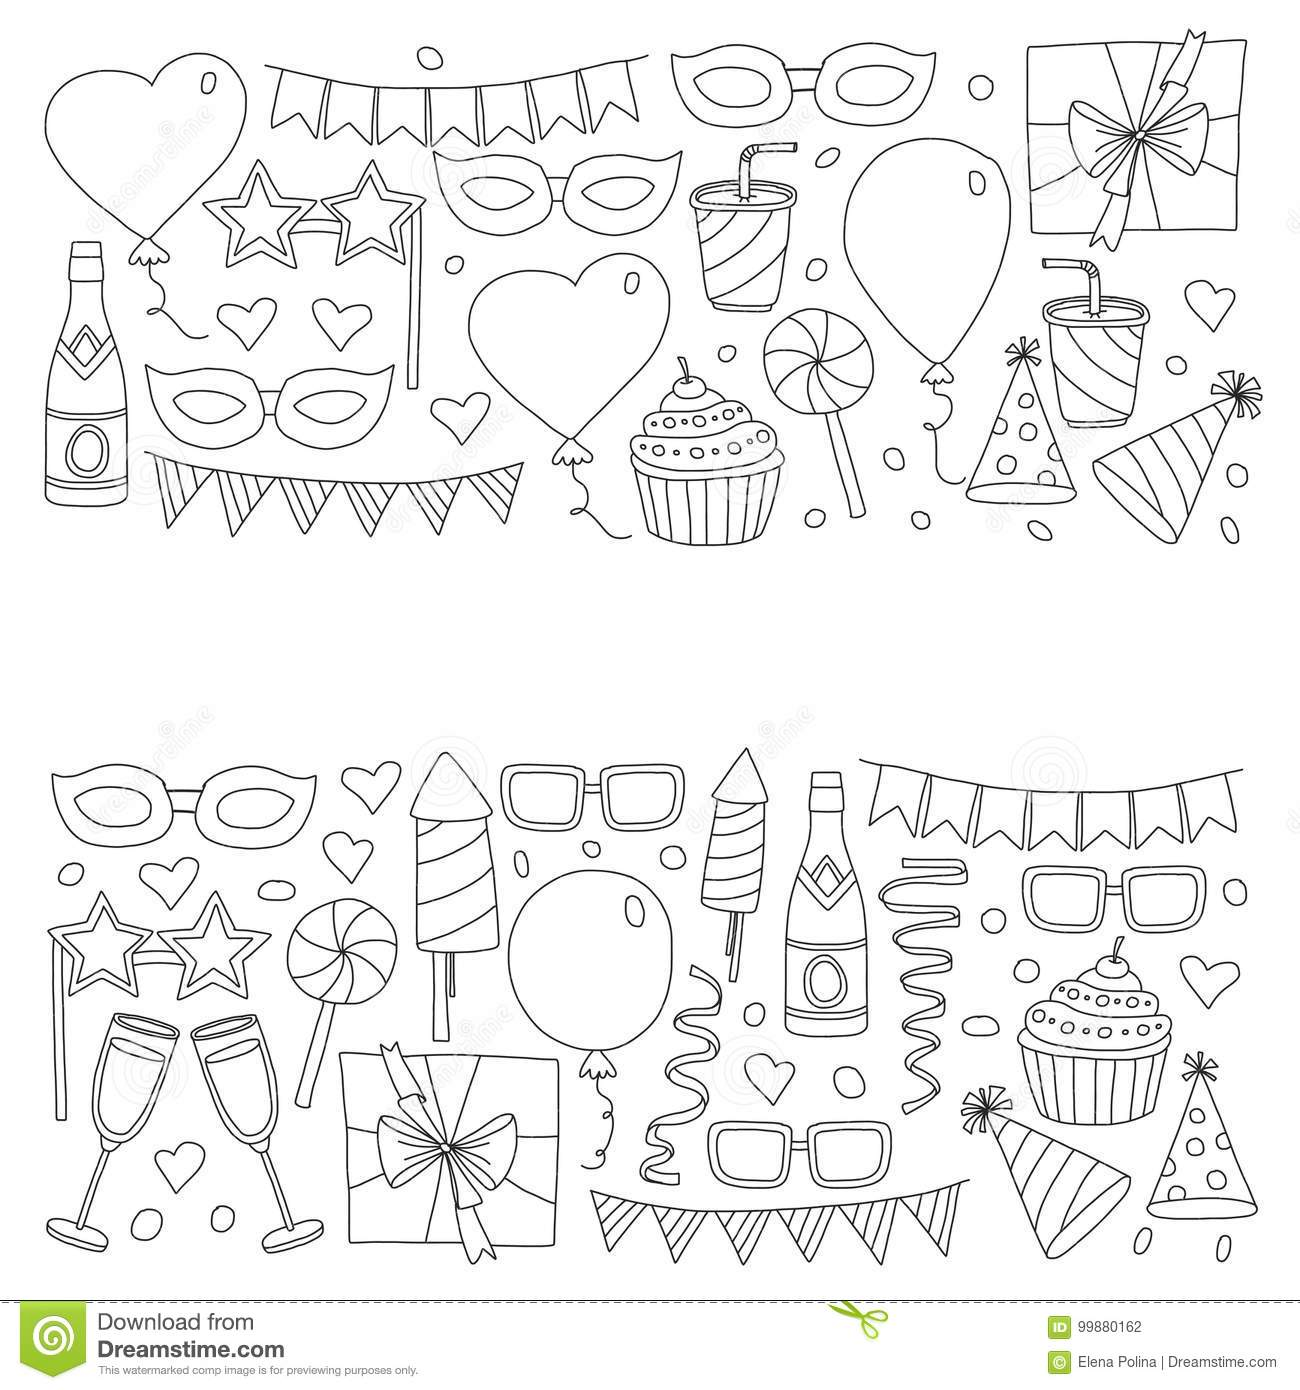 birthday party pictures for drawing ; set-birthday-party-design-elements-kids-drawing-doodle-icons-colorful-balloons-flags-confetti-cupcakes-gifts-cupcake-candles-99880162